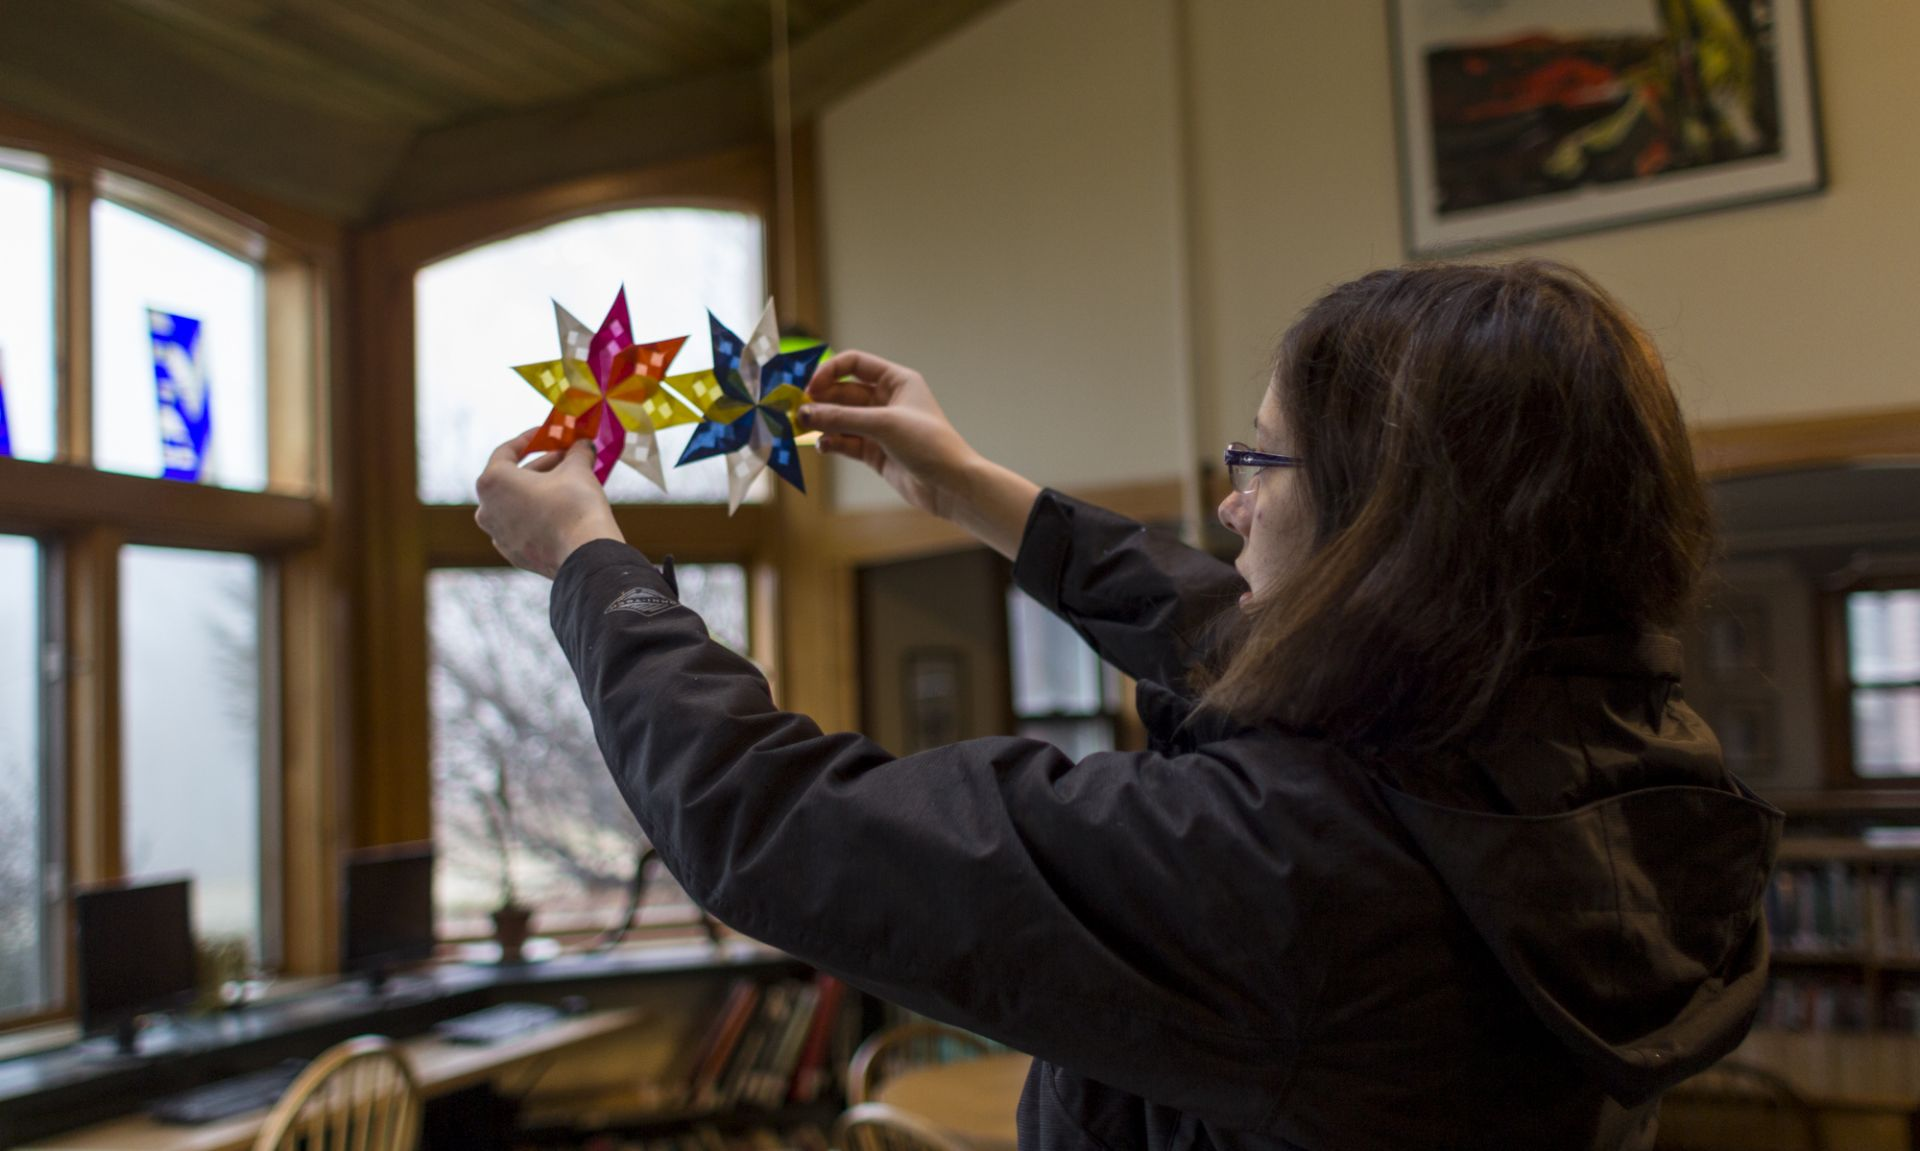 Audrey Quick '17 holds up completed window stars during her afternoon Holiday Activity.